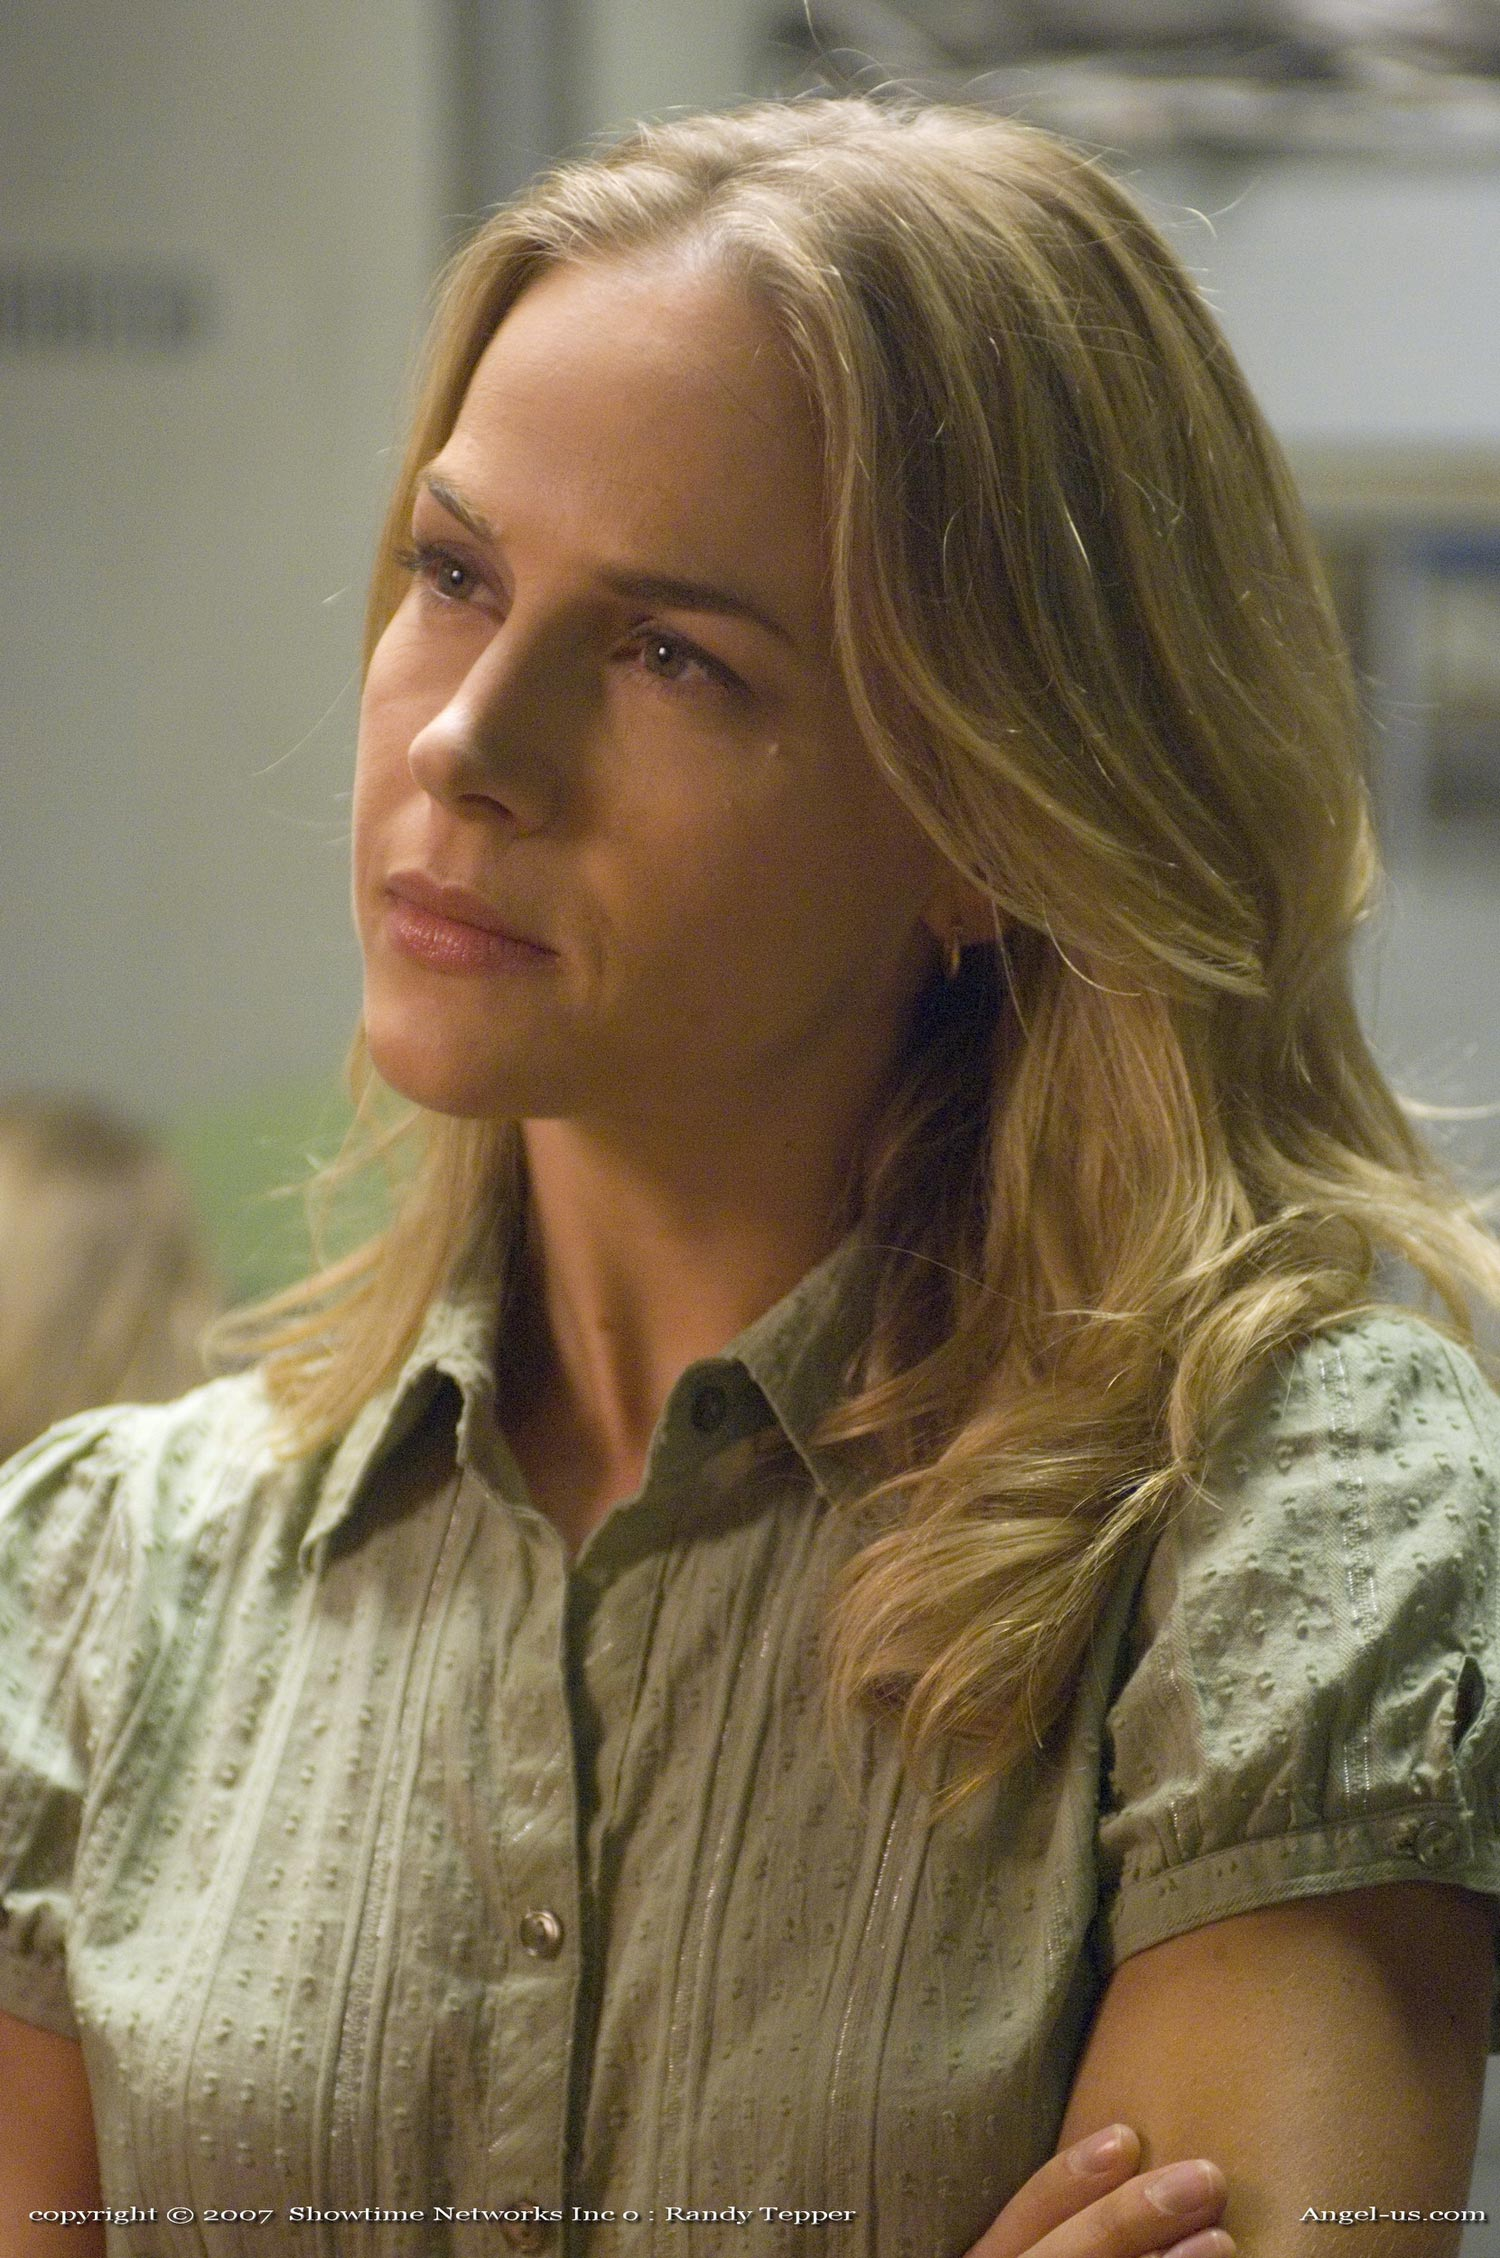 julie benz dexter tv series season 2 stills 01 hq 1500 ... Wednesday after a series of missteps by key team members.